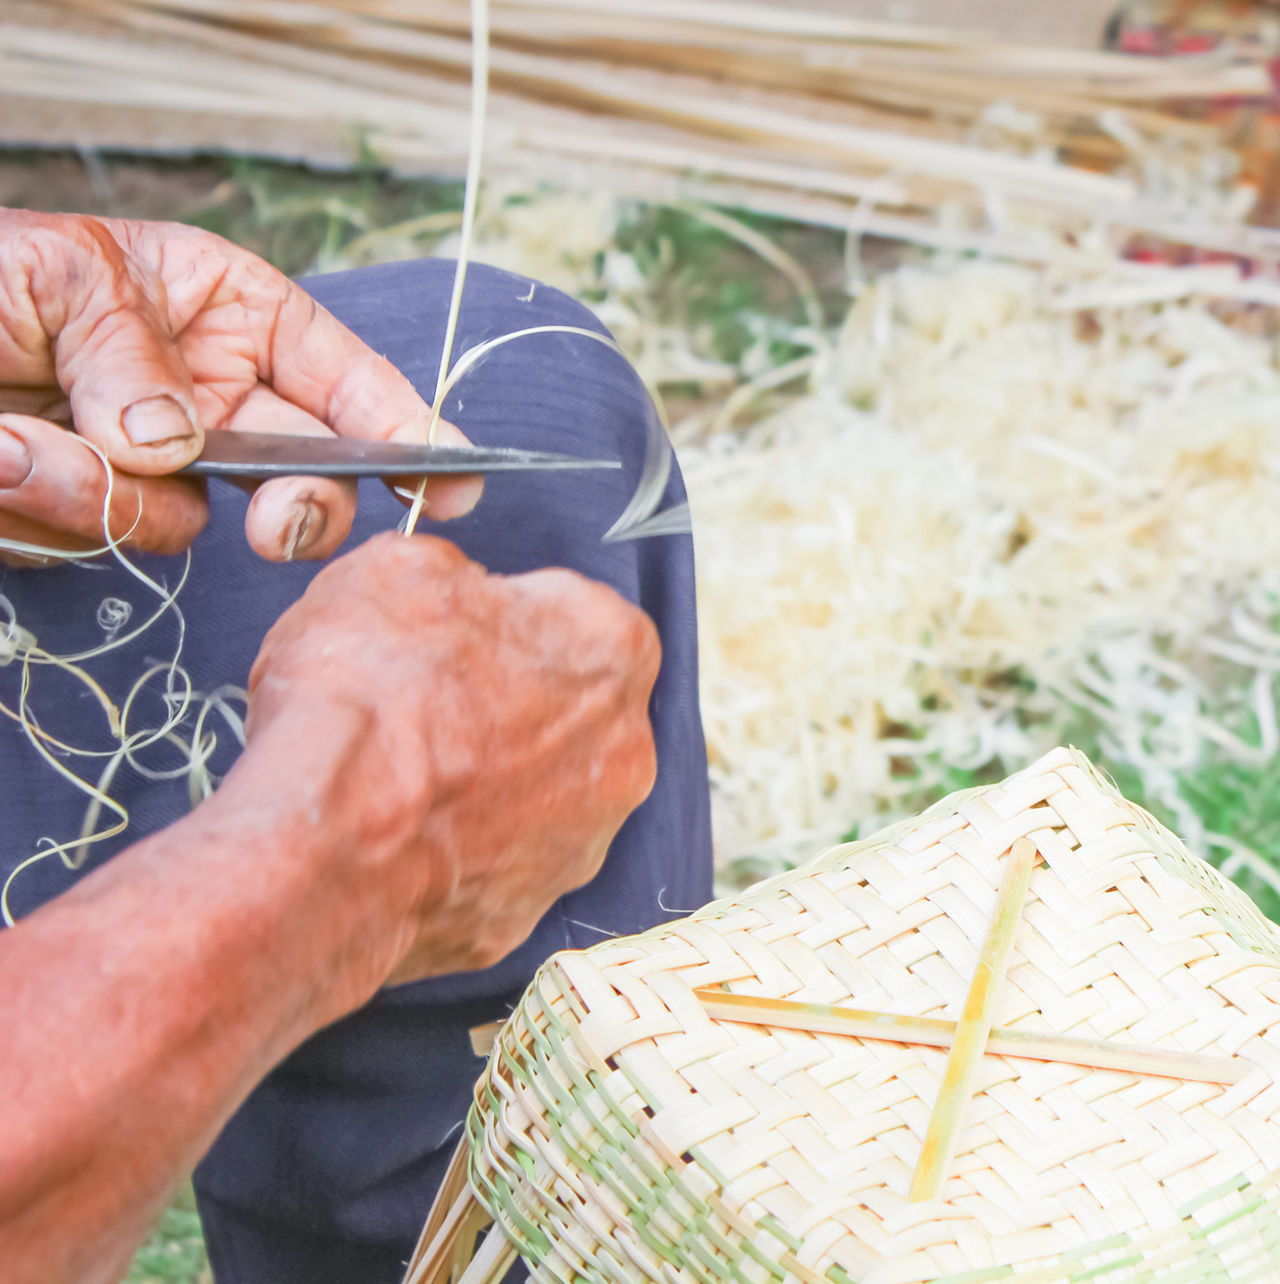 Adult Adults Only Art ArtWork Bamboo Bamboo - Plant Close-up Day Human Body Part Human Hand People People And Places People And Places. People Of EyeEm People Photography Peoplephotography Peoples Thai Thailand Woven Woven Bamboo Woven Basket Woven Baskets Woven Pattern Wovenhand